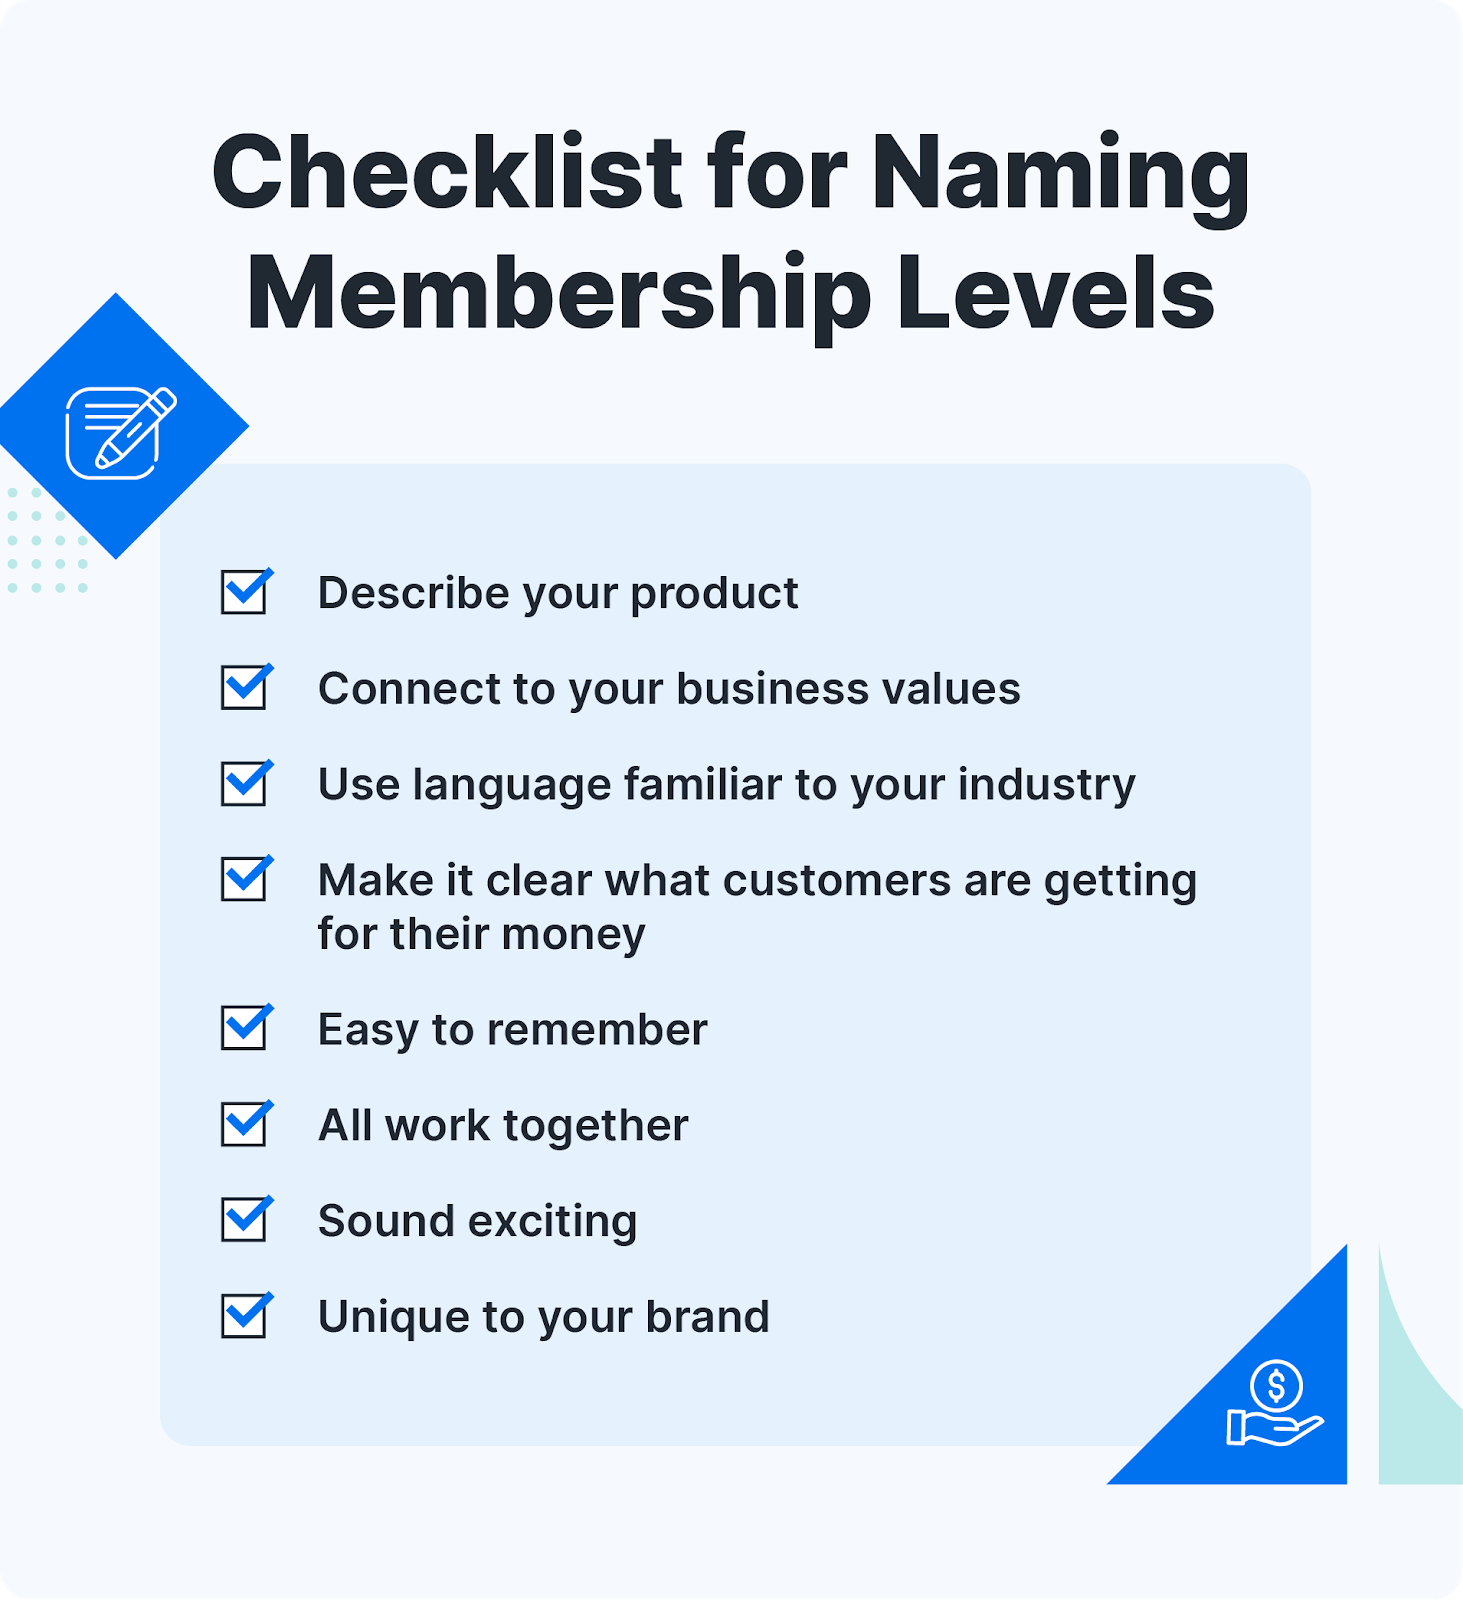 Checklist for coming up with good membership level names